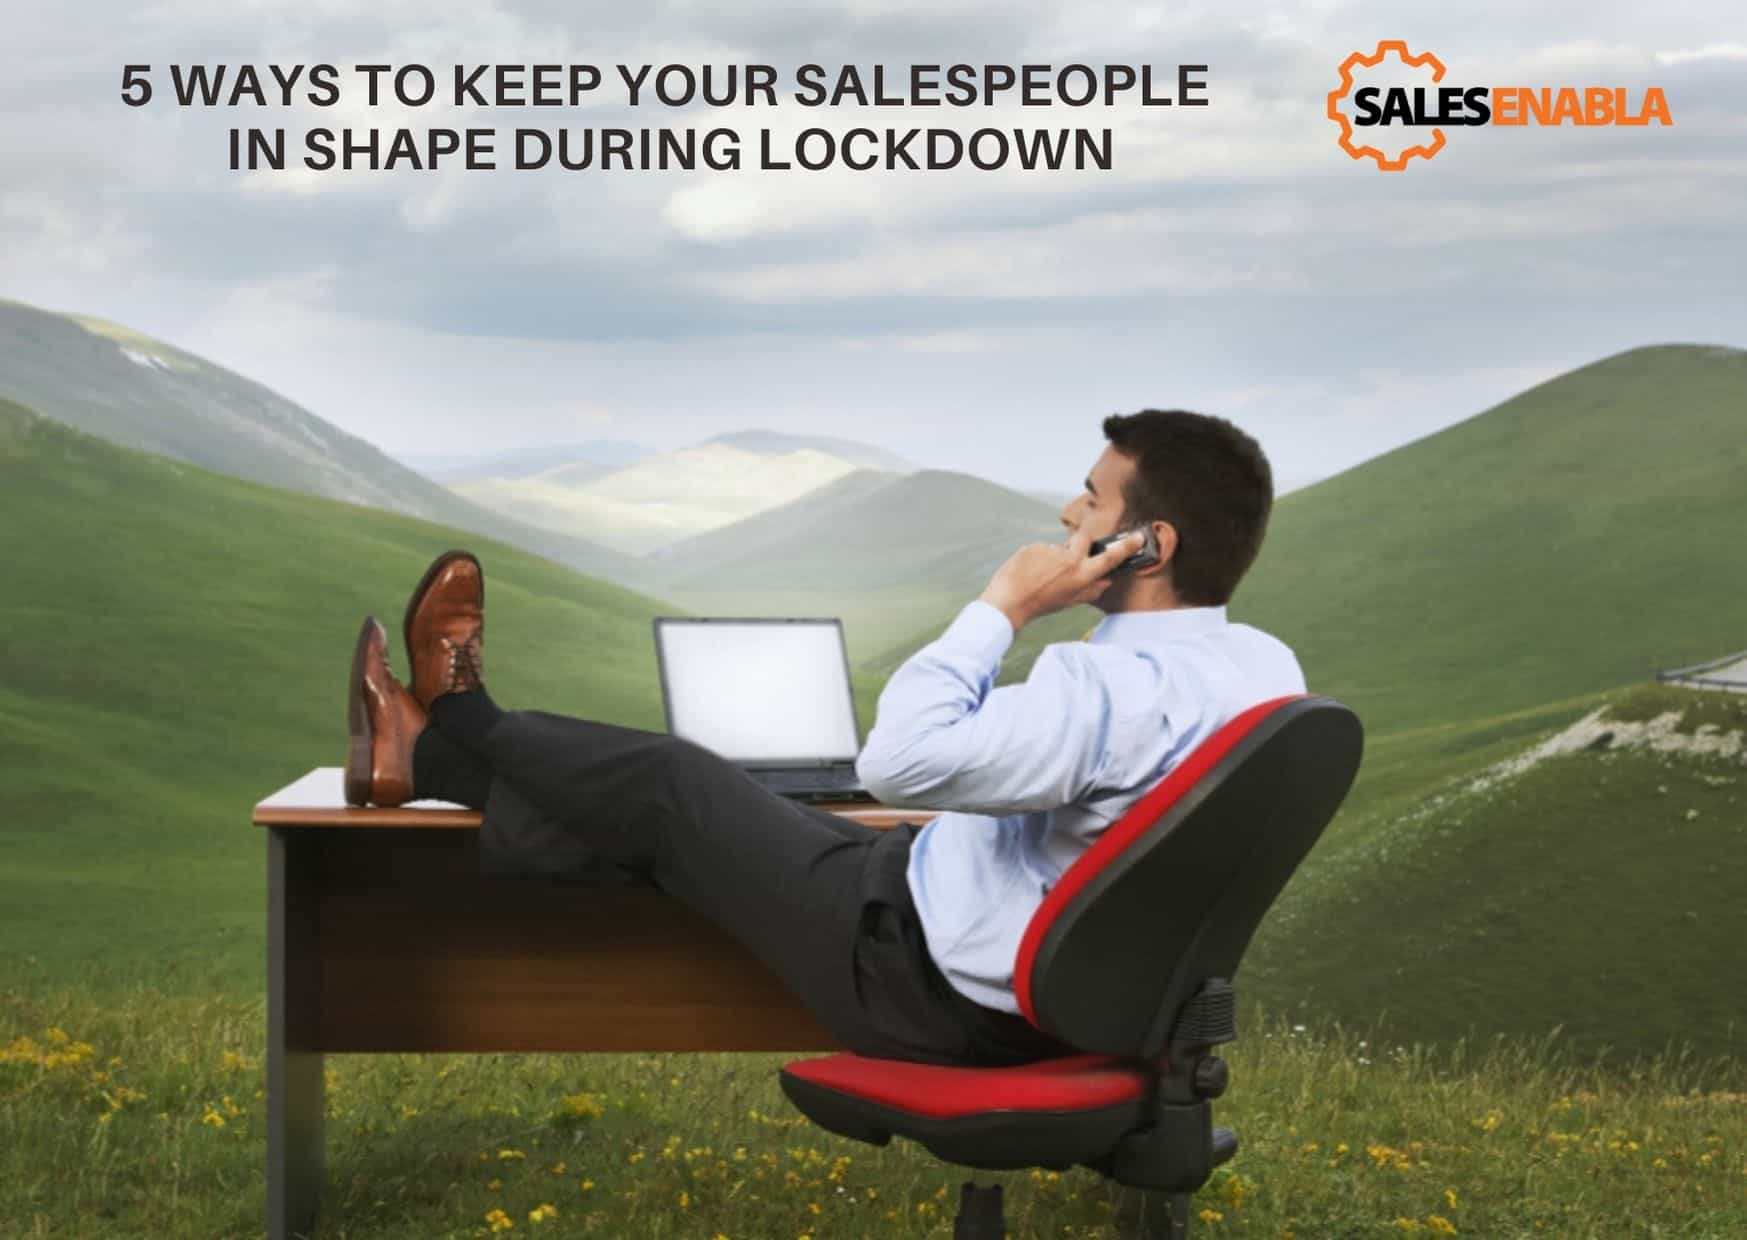 5 Things Your Salespeople Should Be Doing While On Lockdown